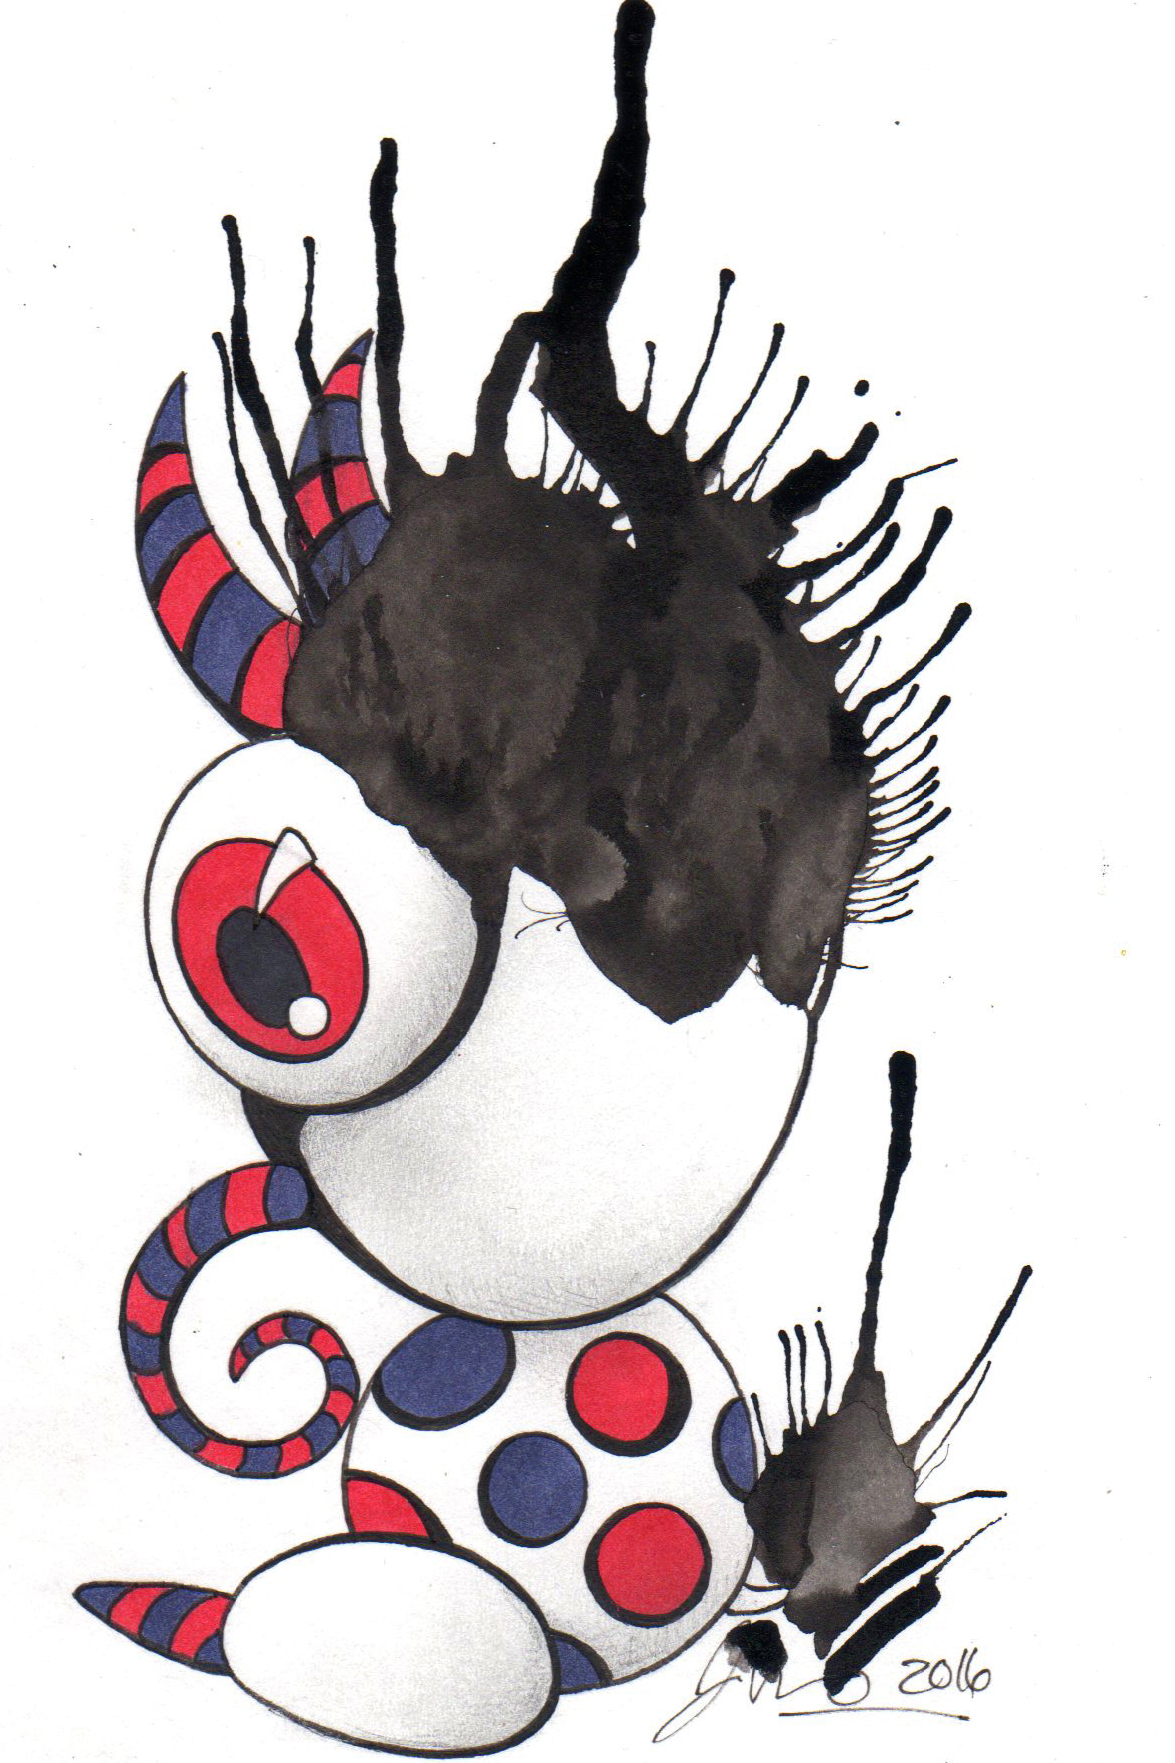 Ink Blot Monster #12